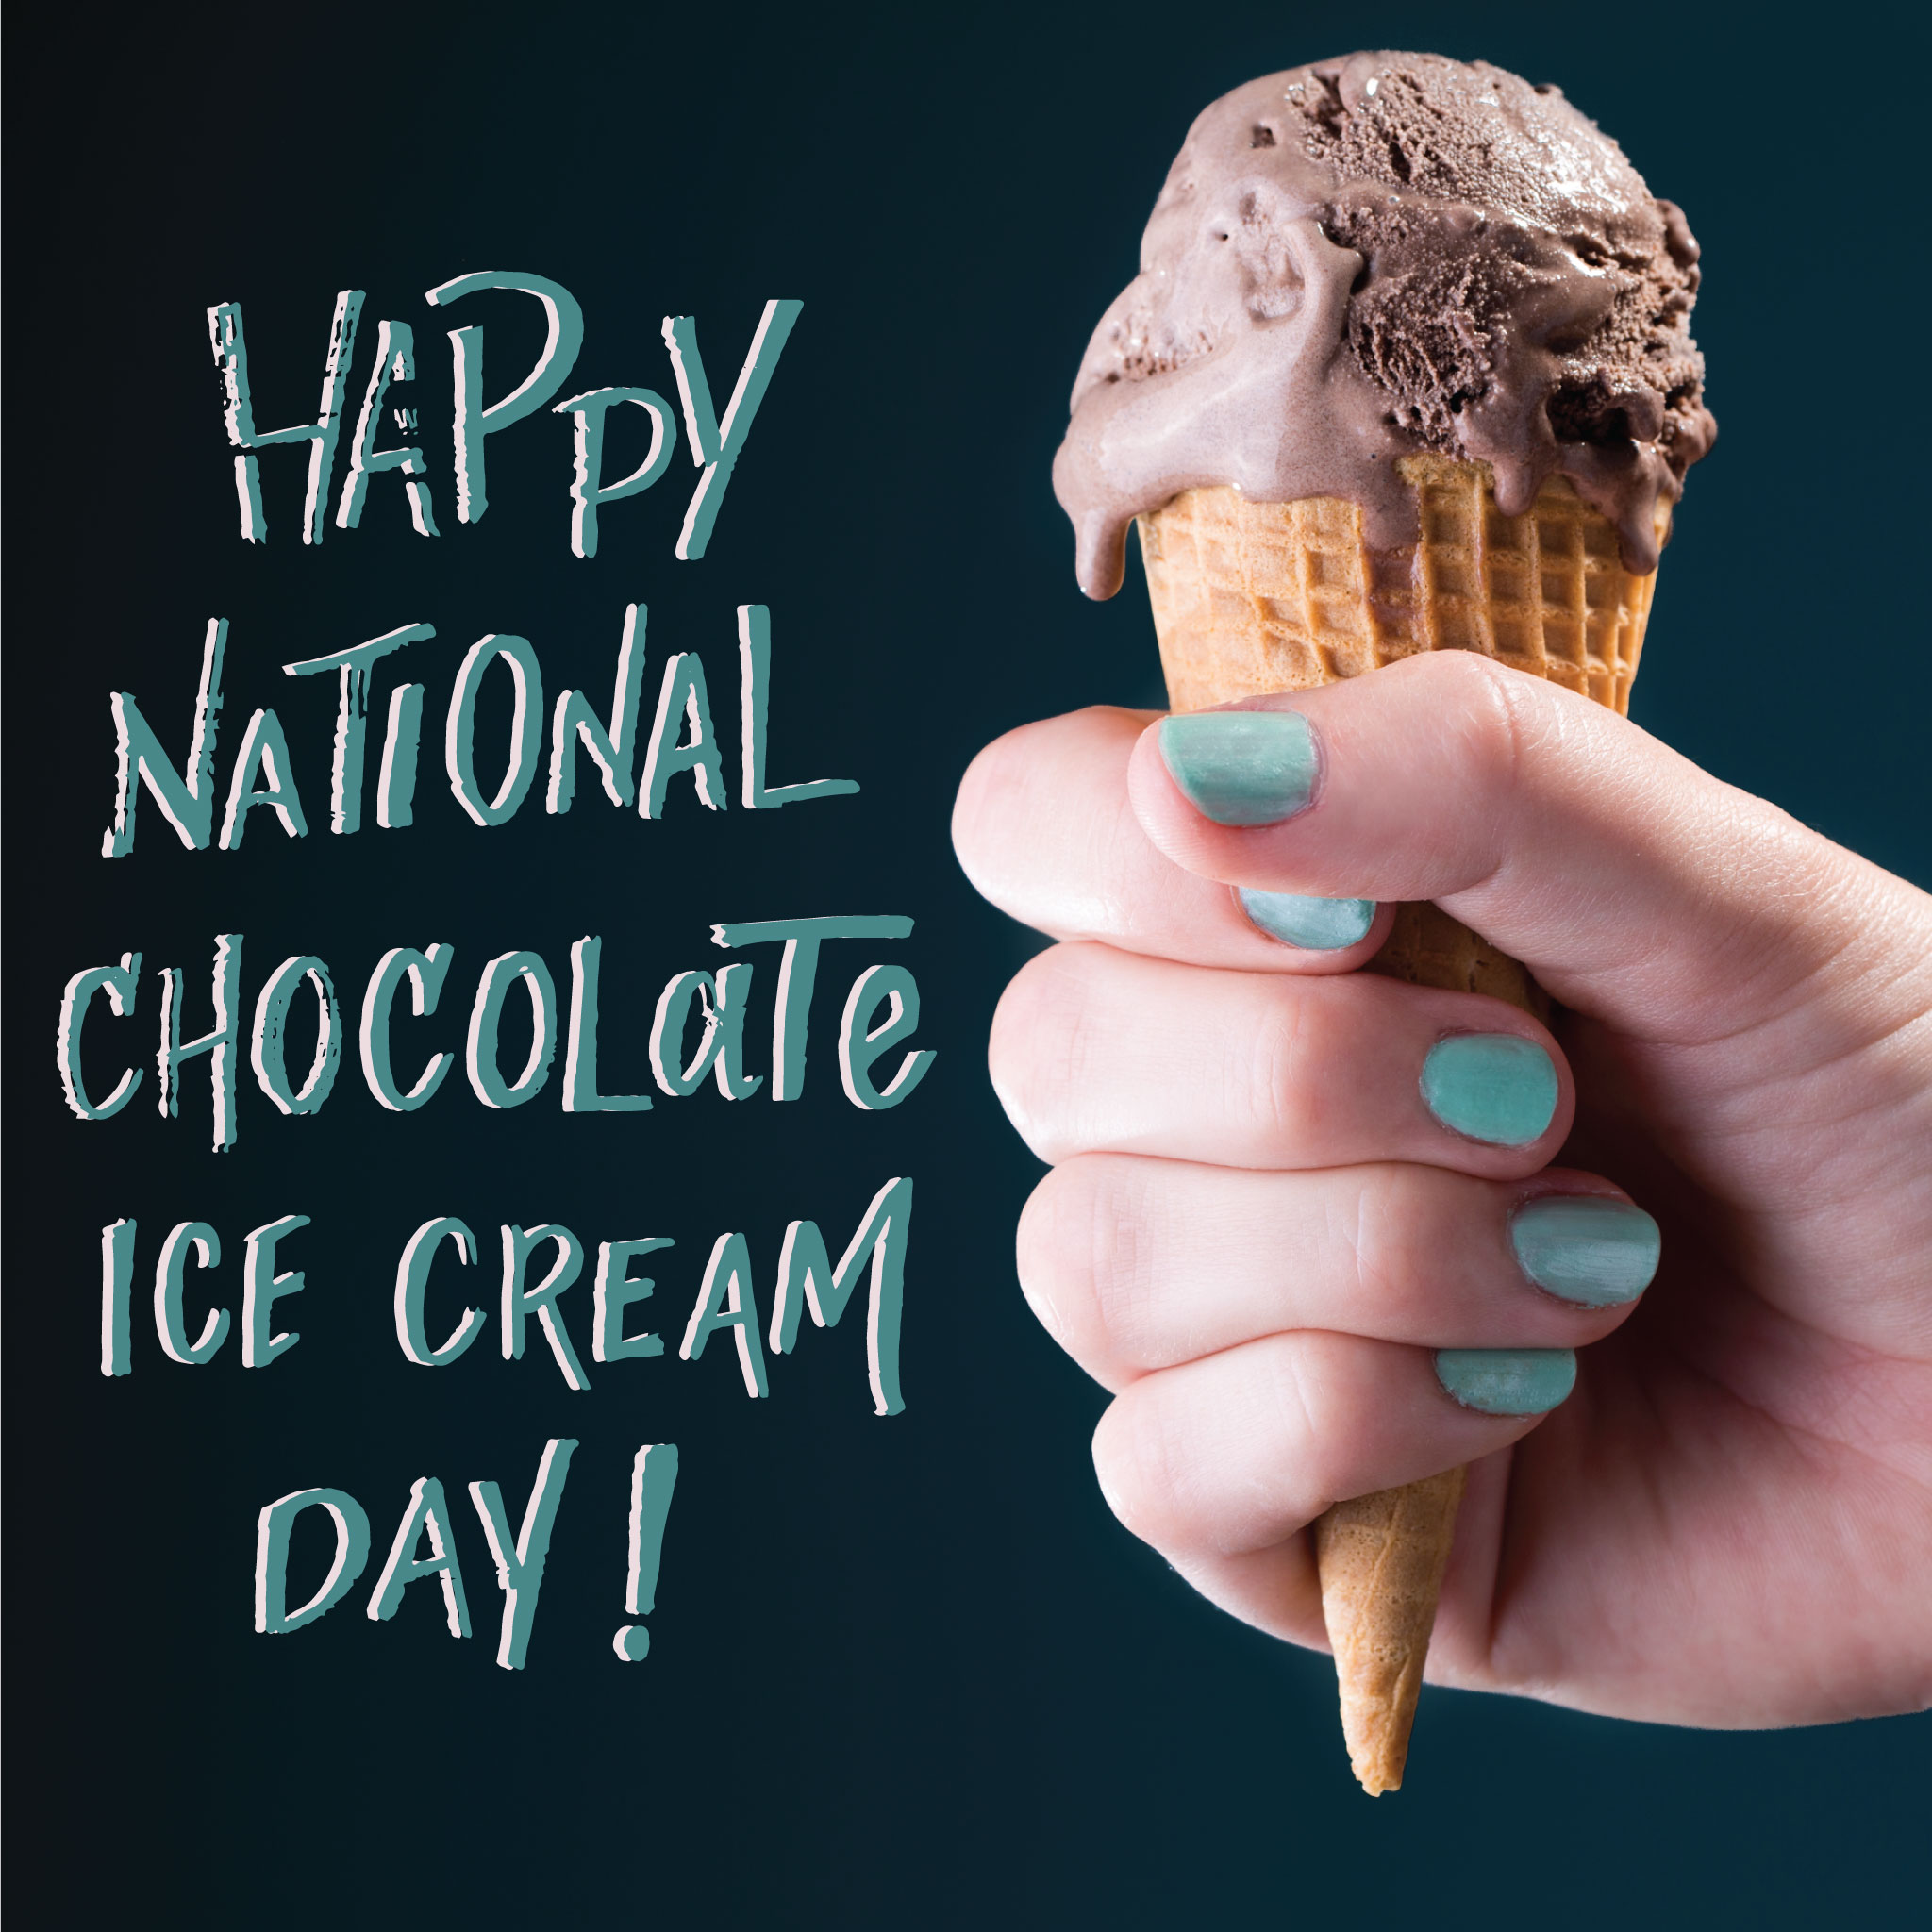 National Chocolate Ice Cream Day